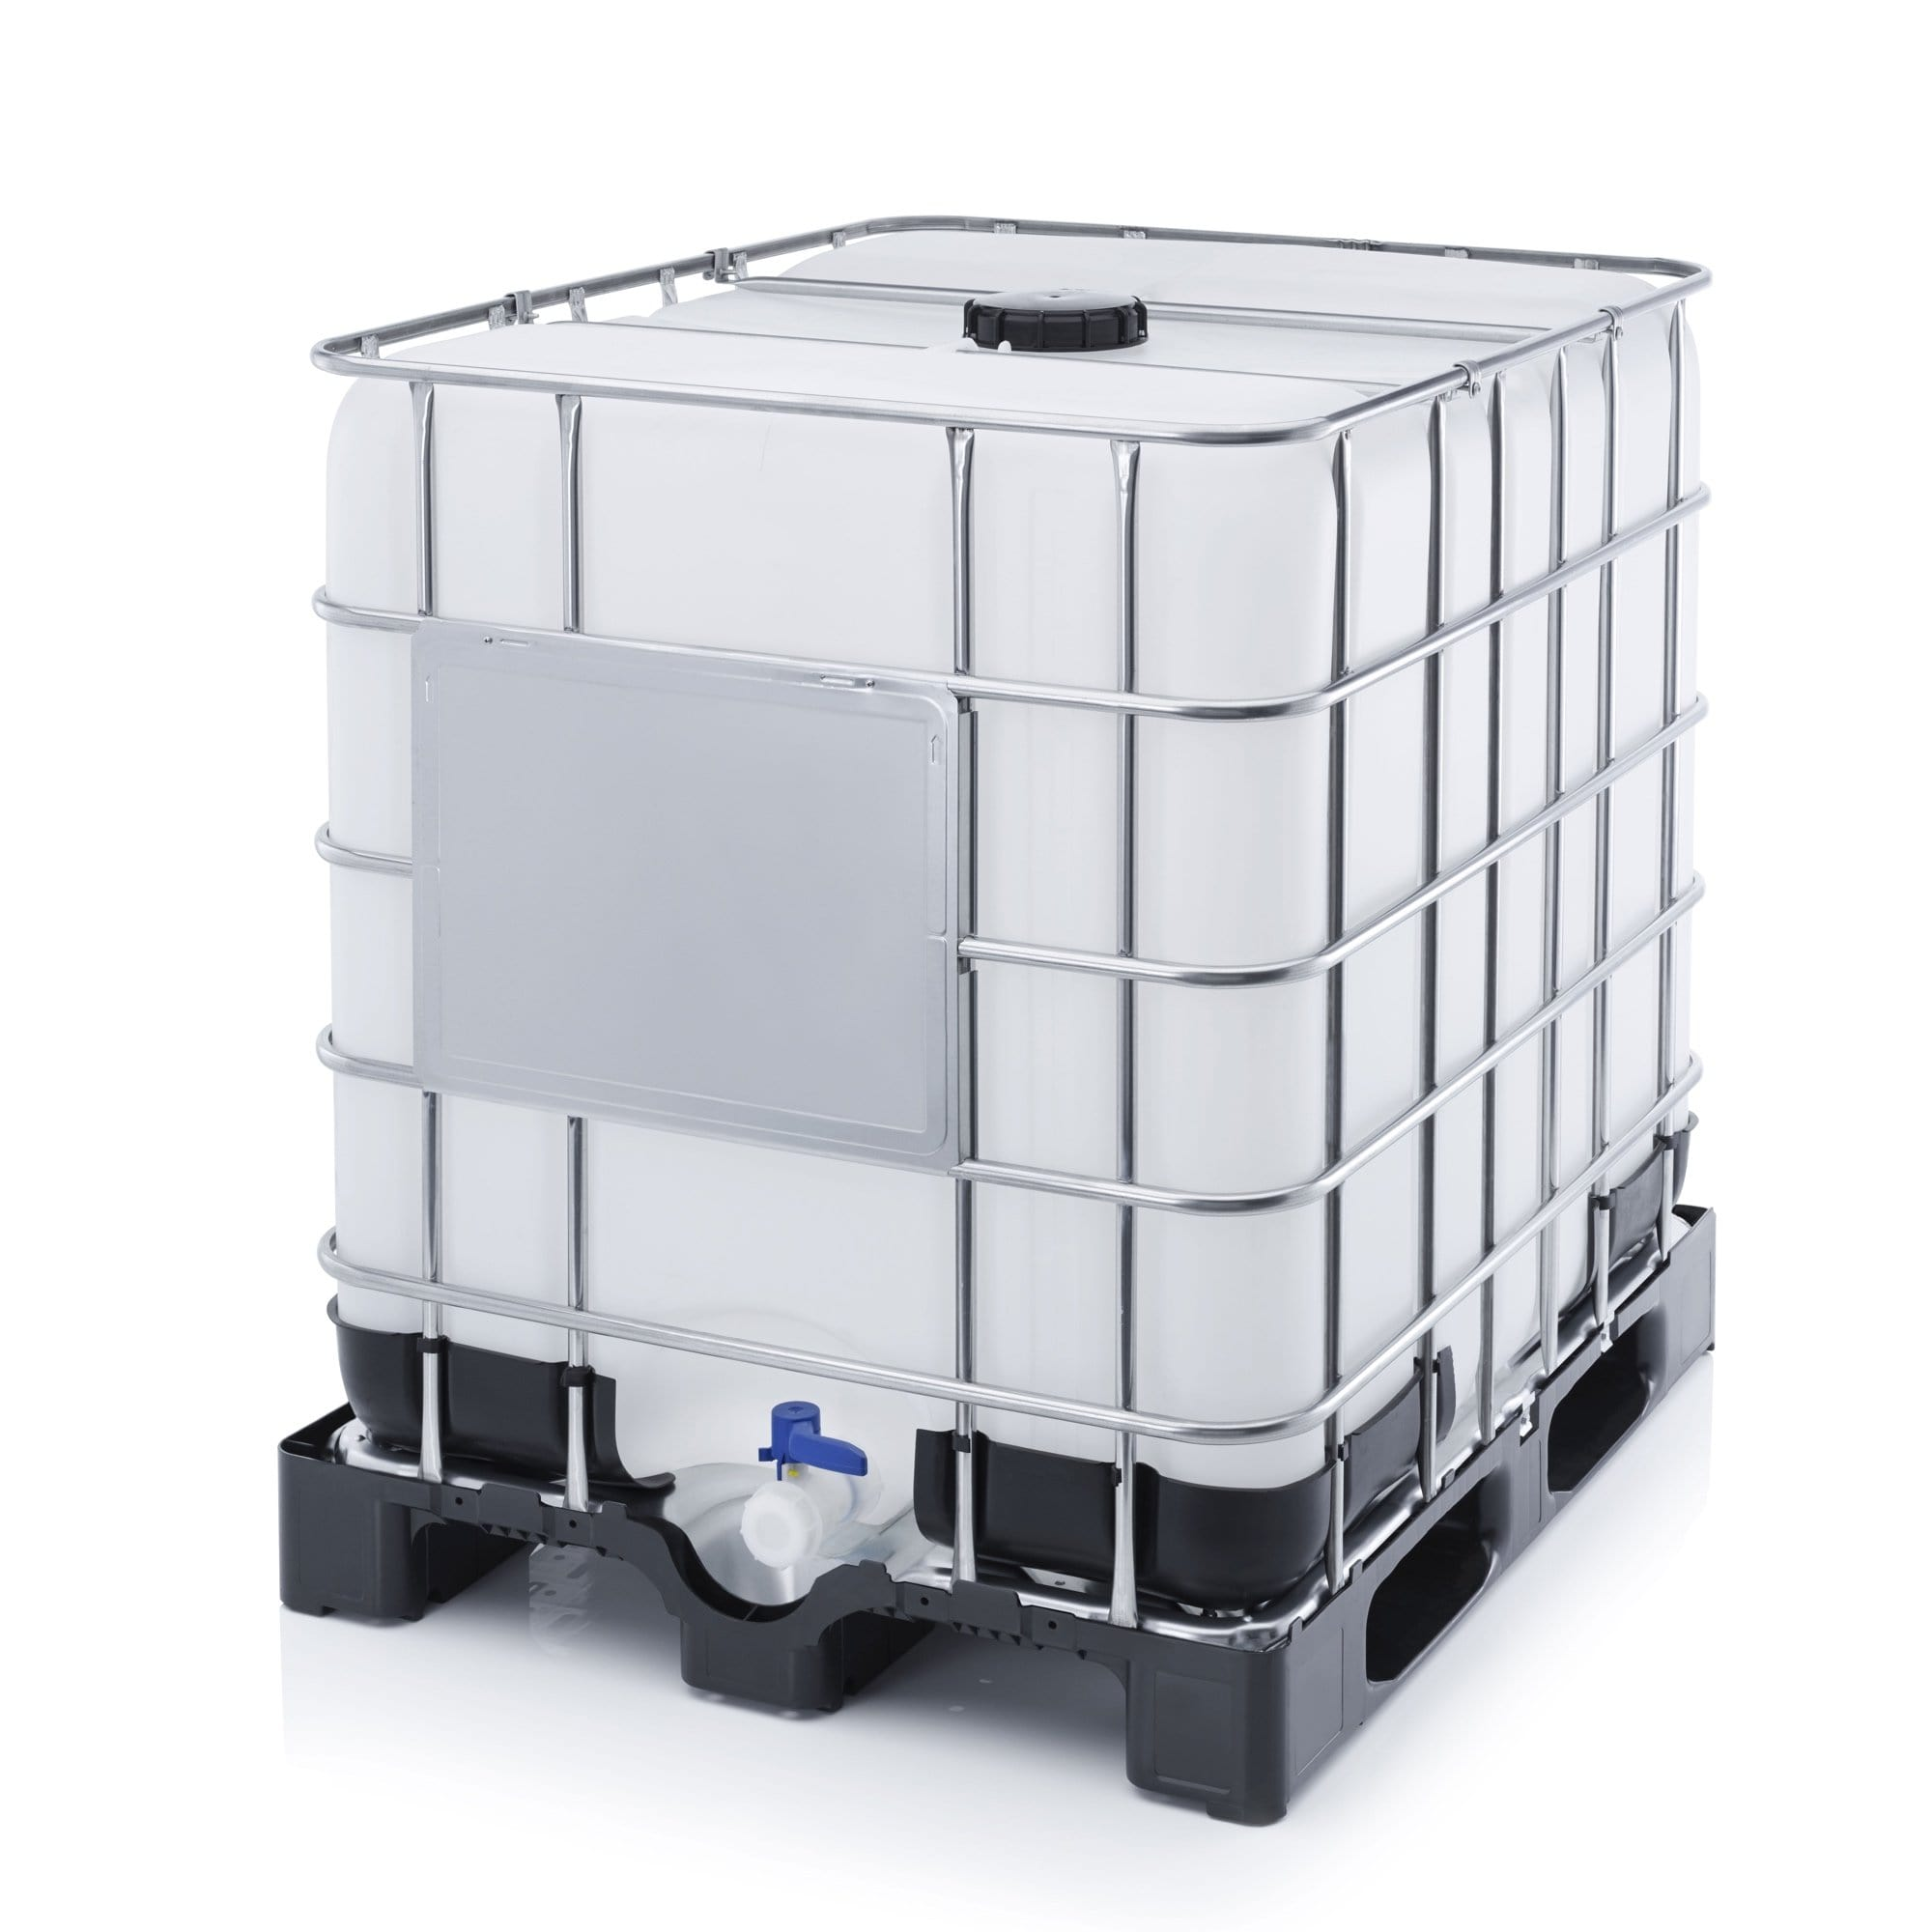 IBC Storage Tanks - Window Cleaning Warehouse Ltd